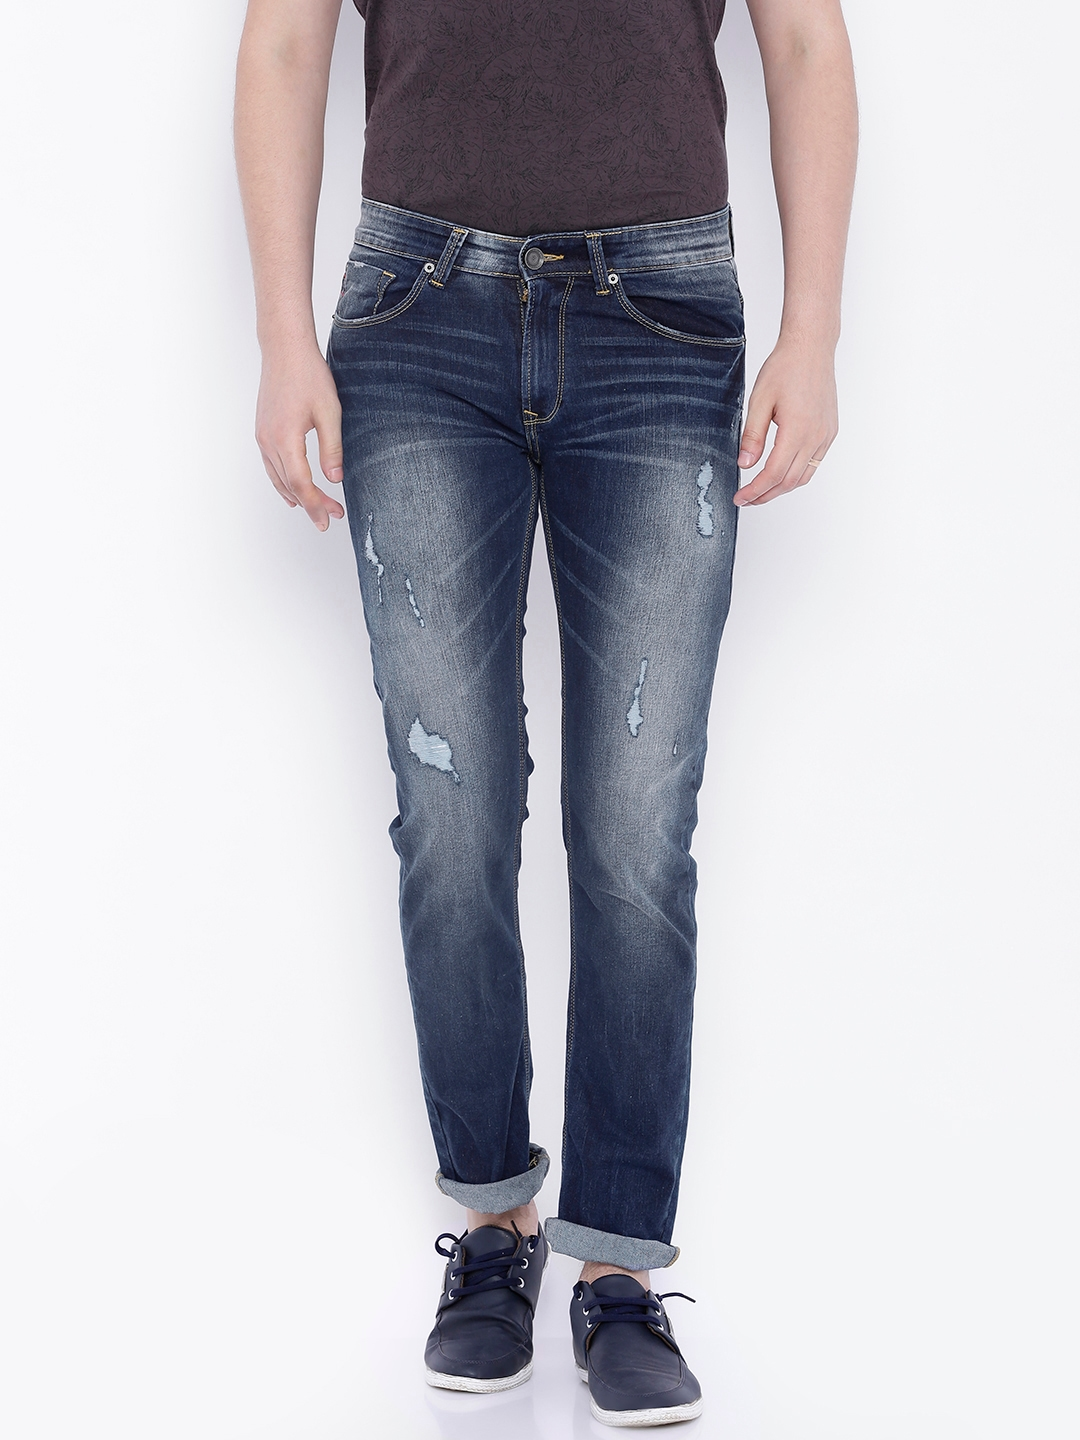 351a2be69660 SPYKAR Navy Rover Fit Stretchable Jeans